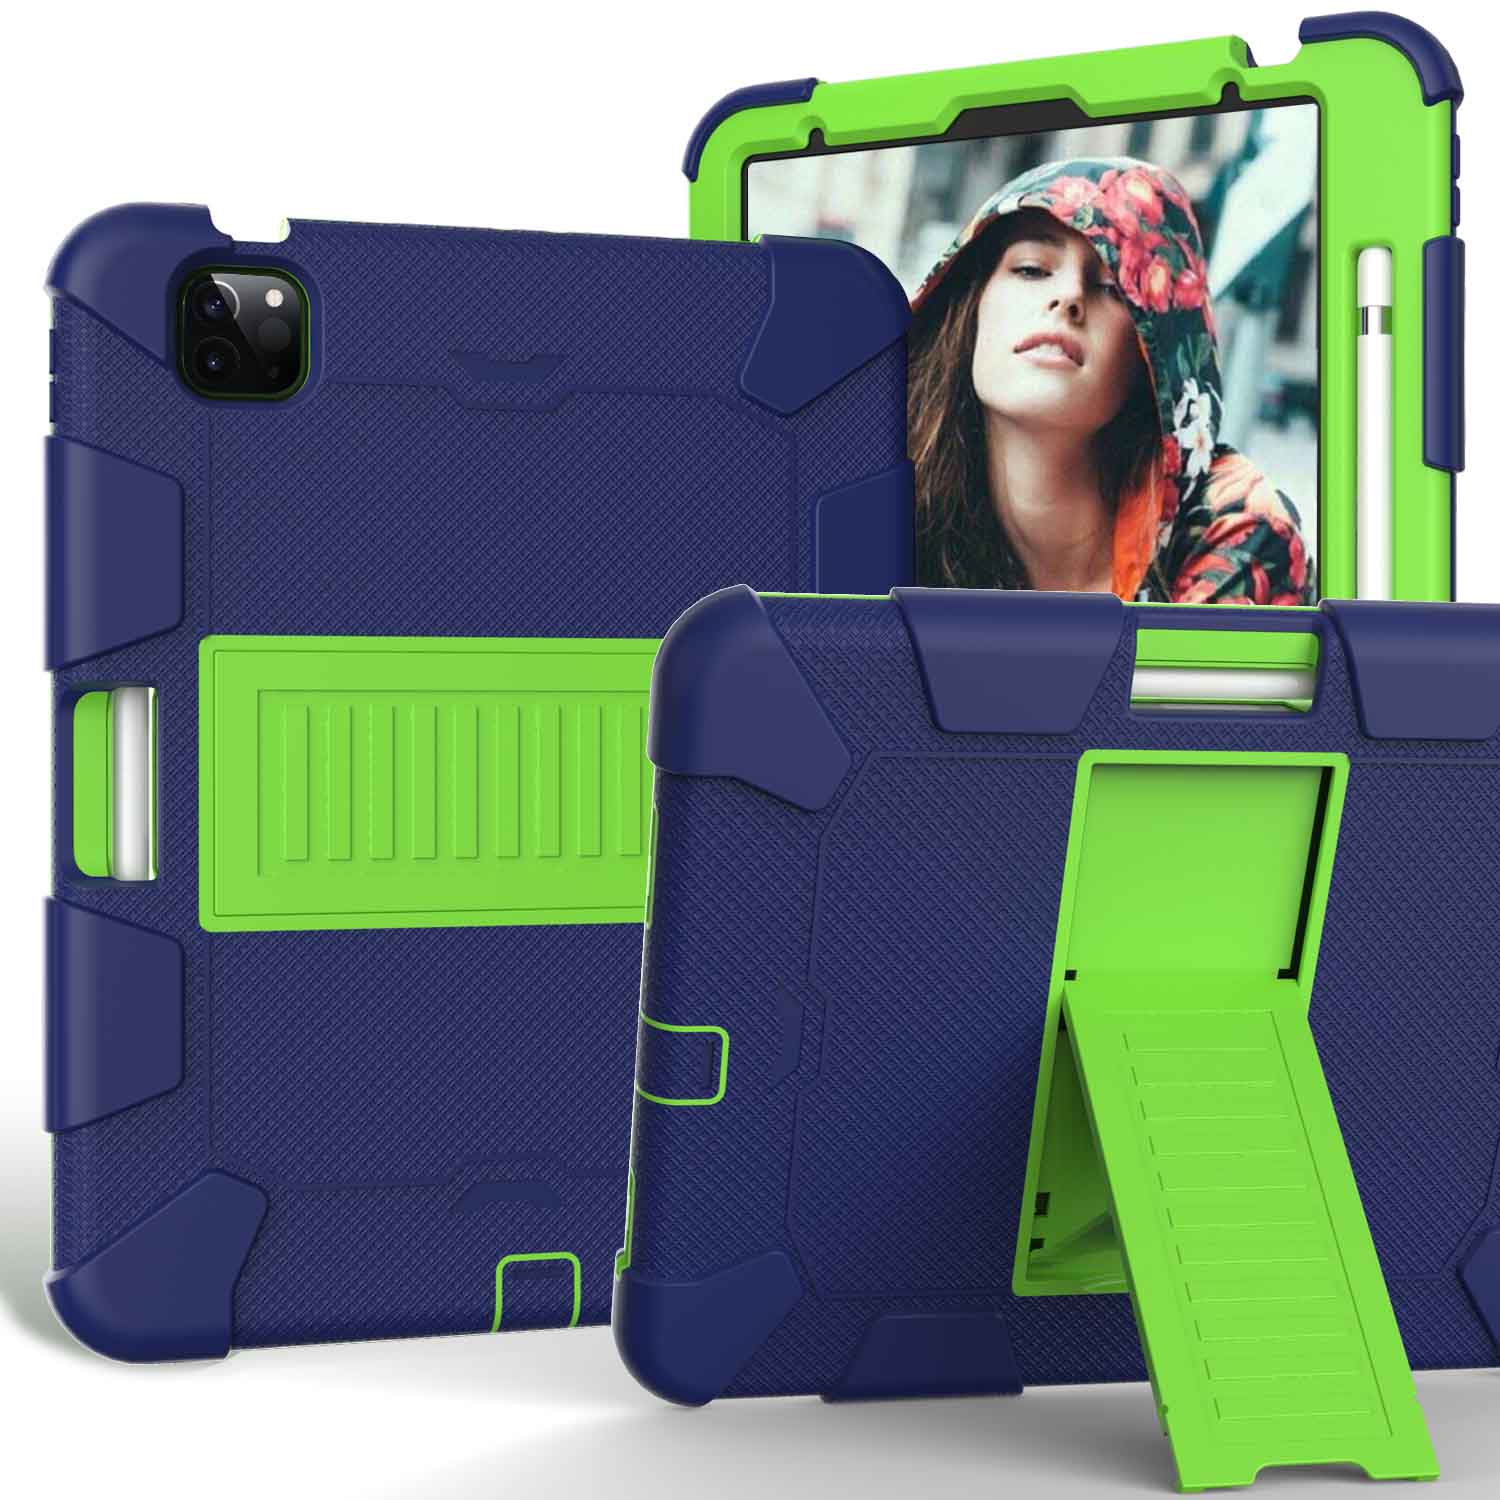 2 Black Kids Tablet Case for iPad Air 4 10 9 inch 2020 Heavy Duty Hybird Shockproof PC